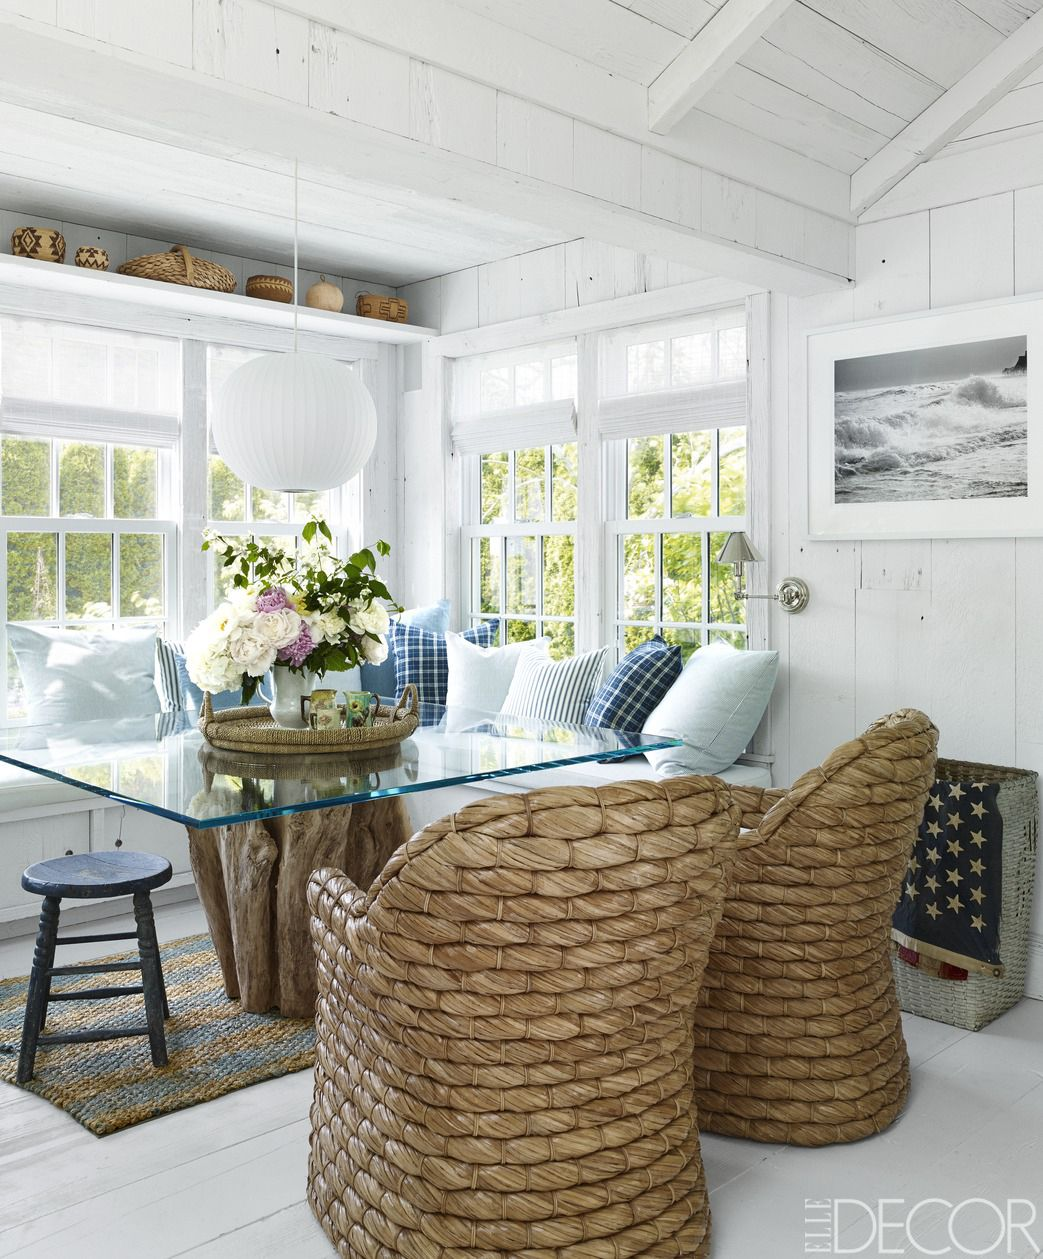 Delightful From Cozy Living Rooms To Dreamy Bedrooms, These Are The ELLE DECOR Spaces  You Love